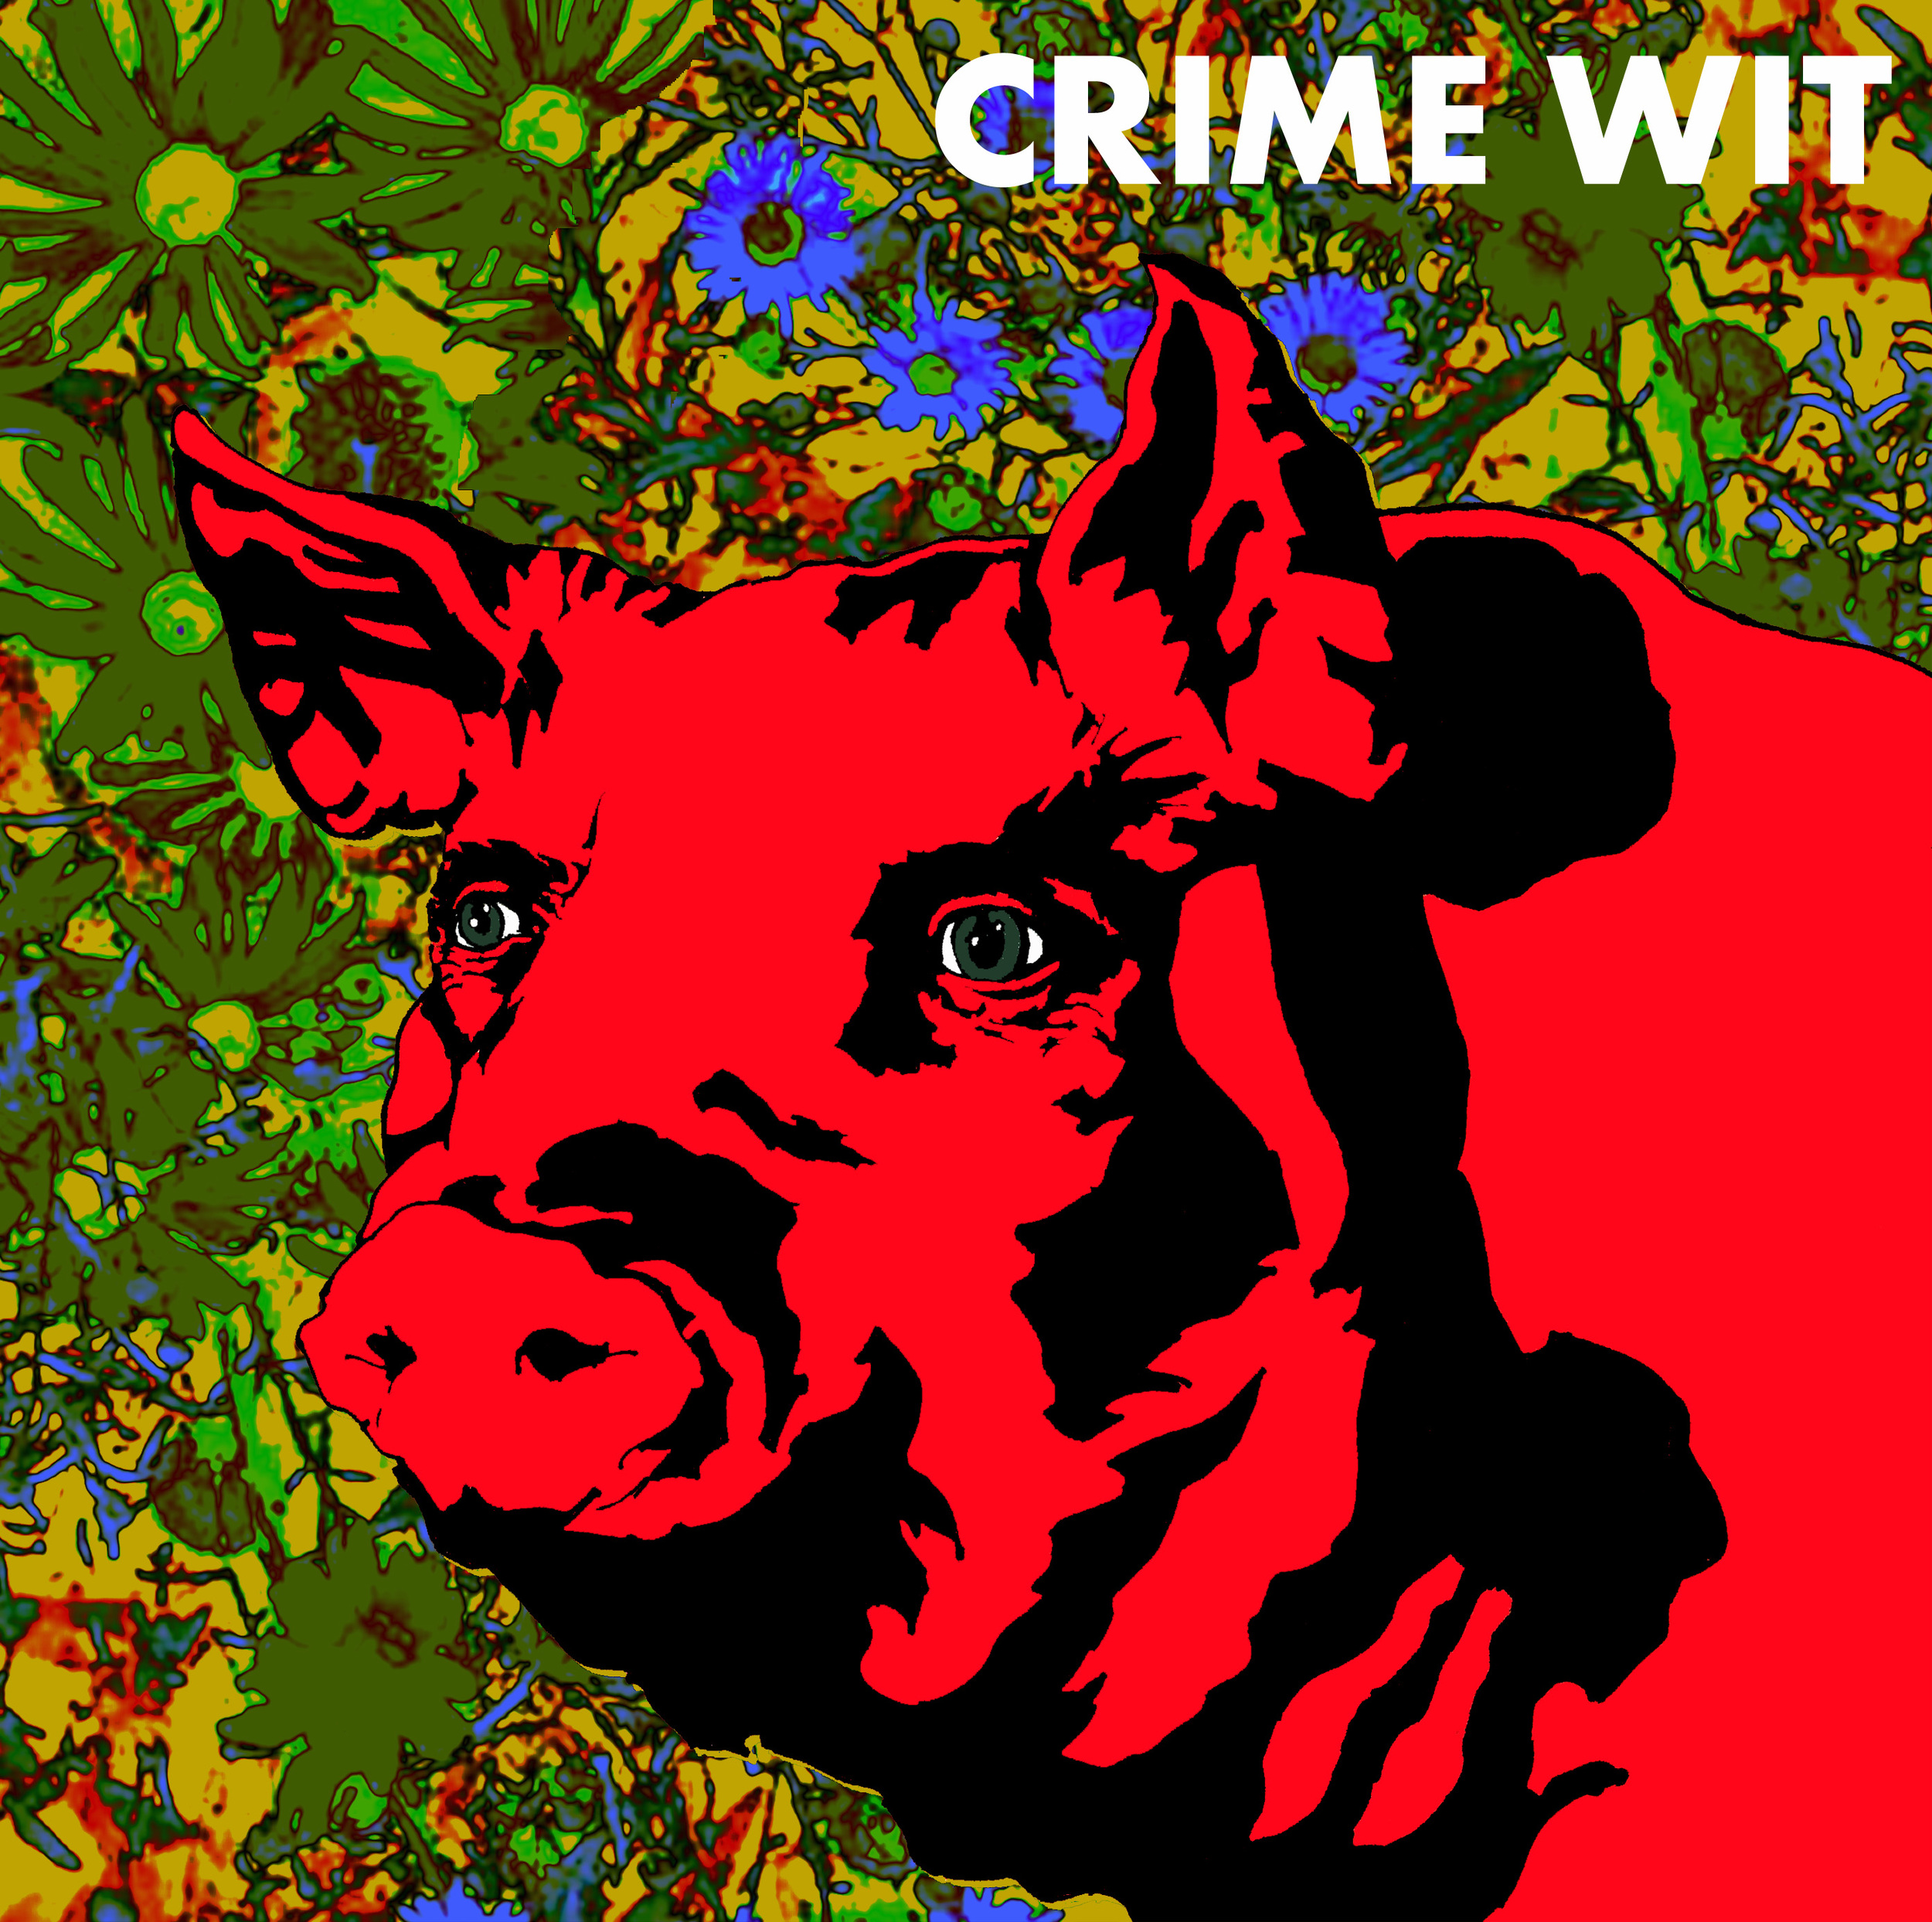 CRIME WIT - flower 4 - text moved.jpg